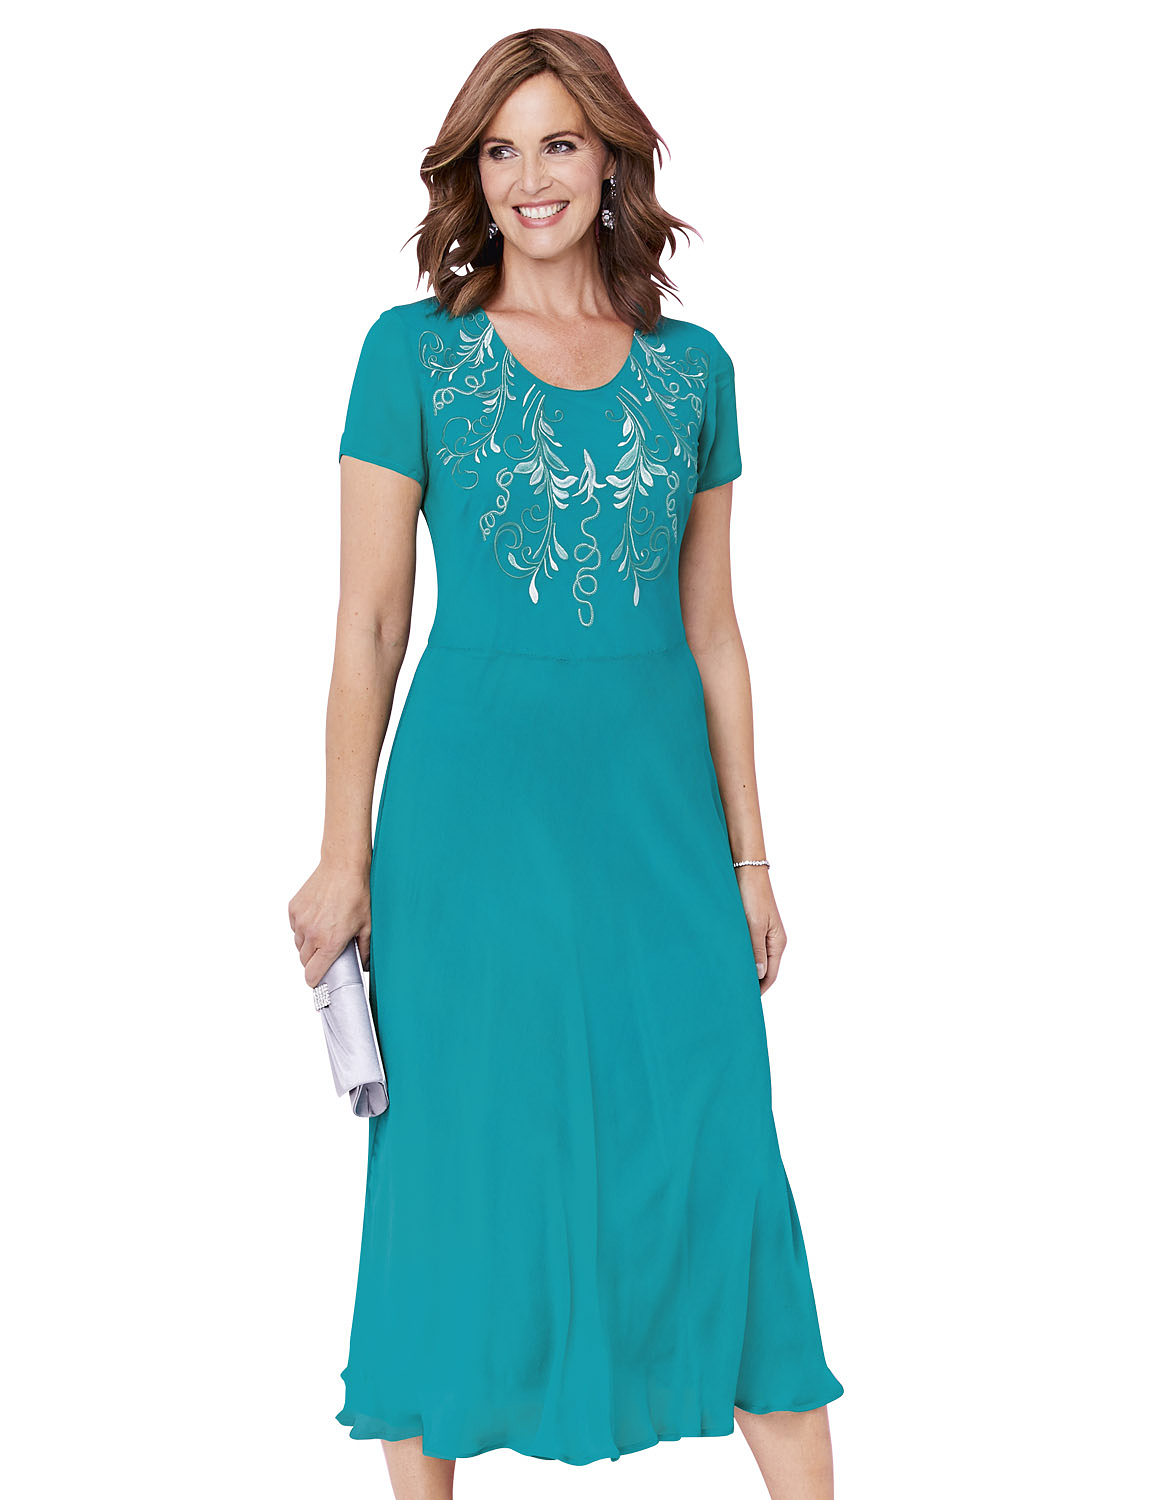 Embroidered Occasion Dress - Jade